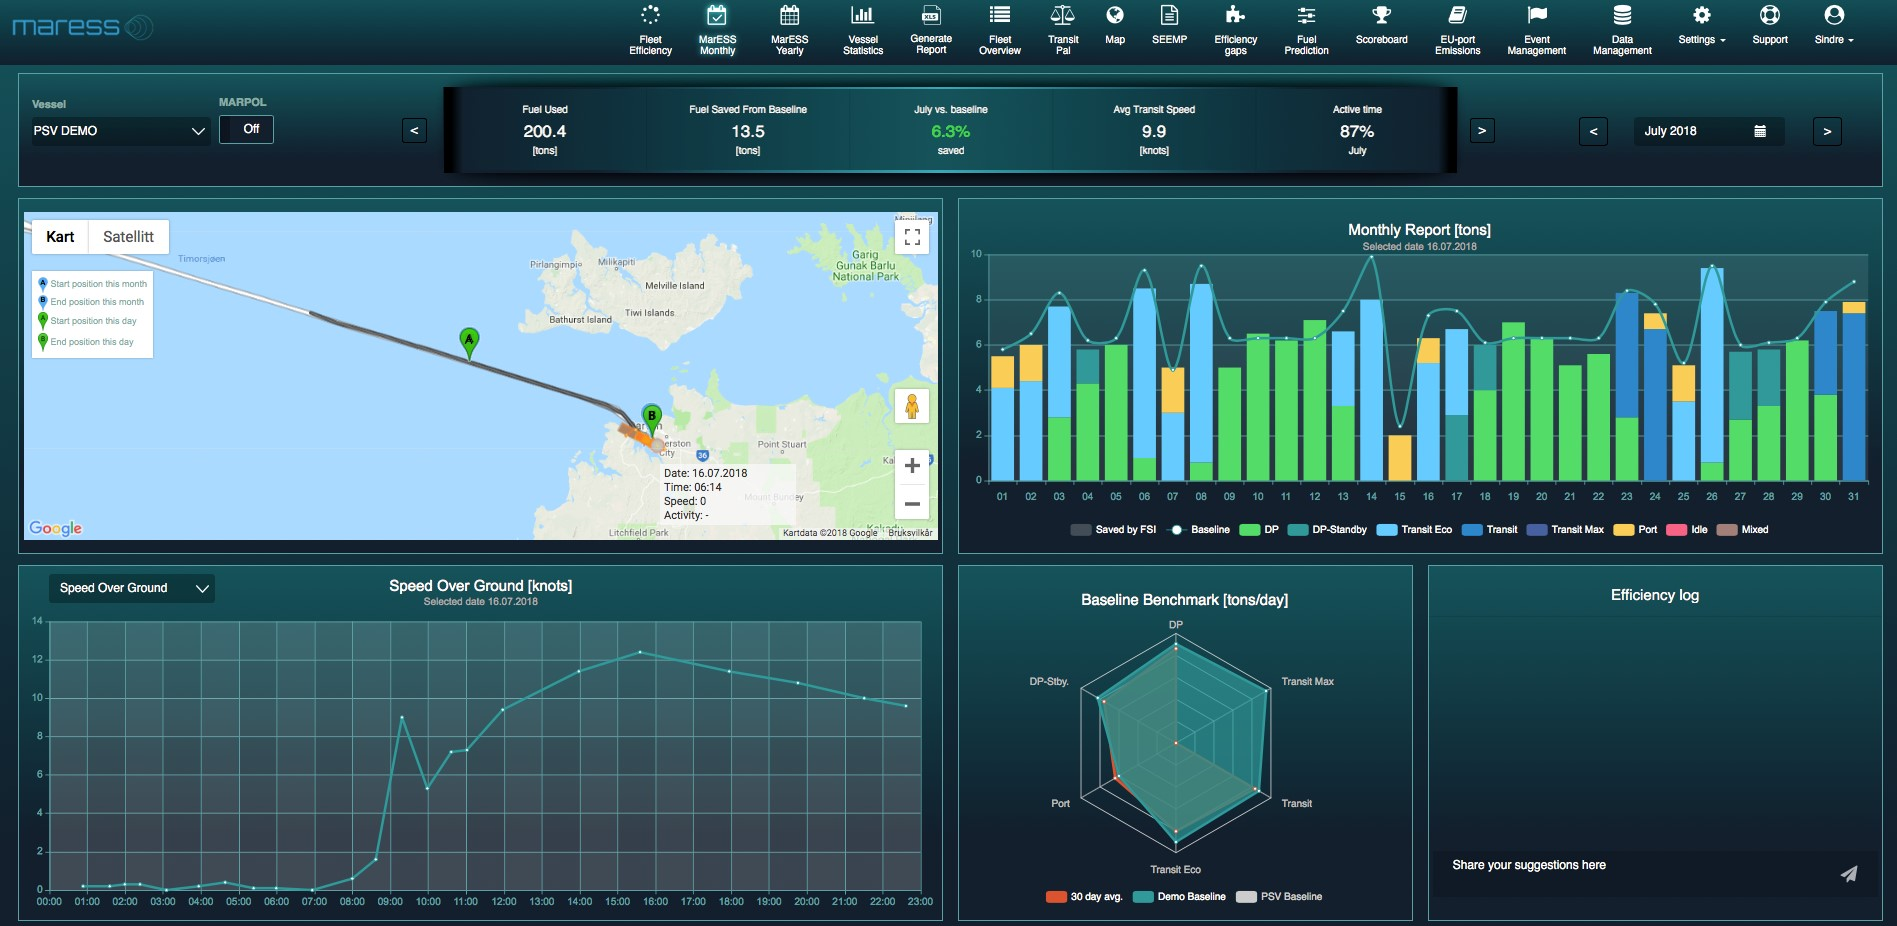 Maress analytics software comparing historic baseline against performance across the full range of operations of a vessel